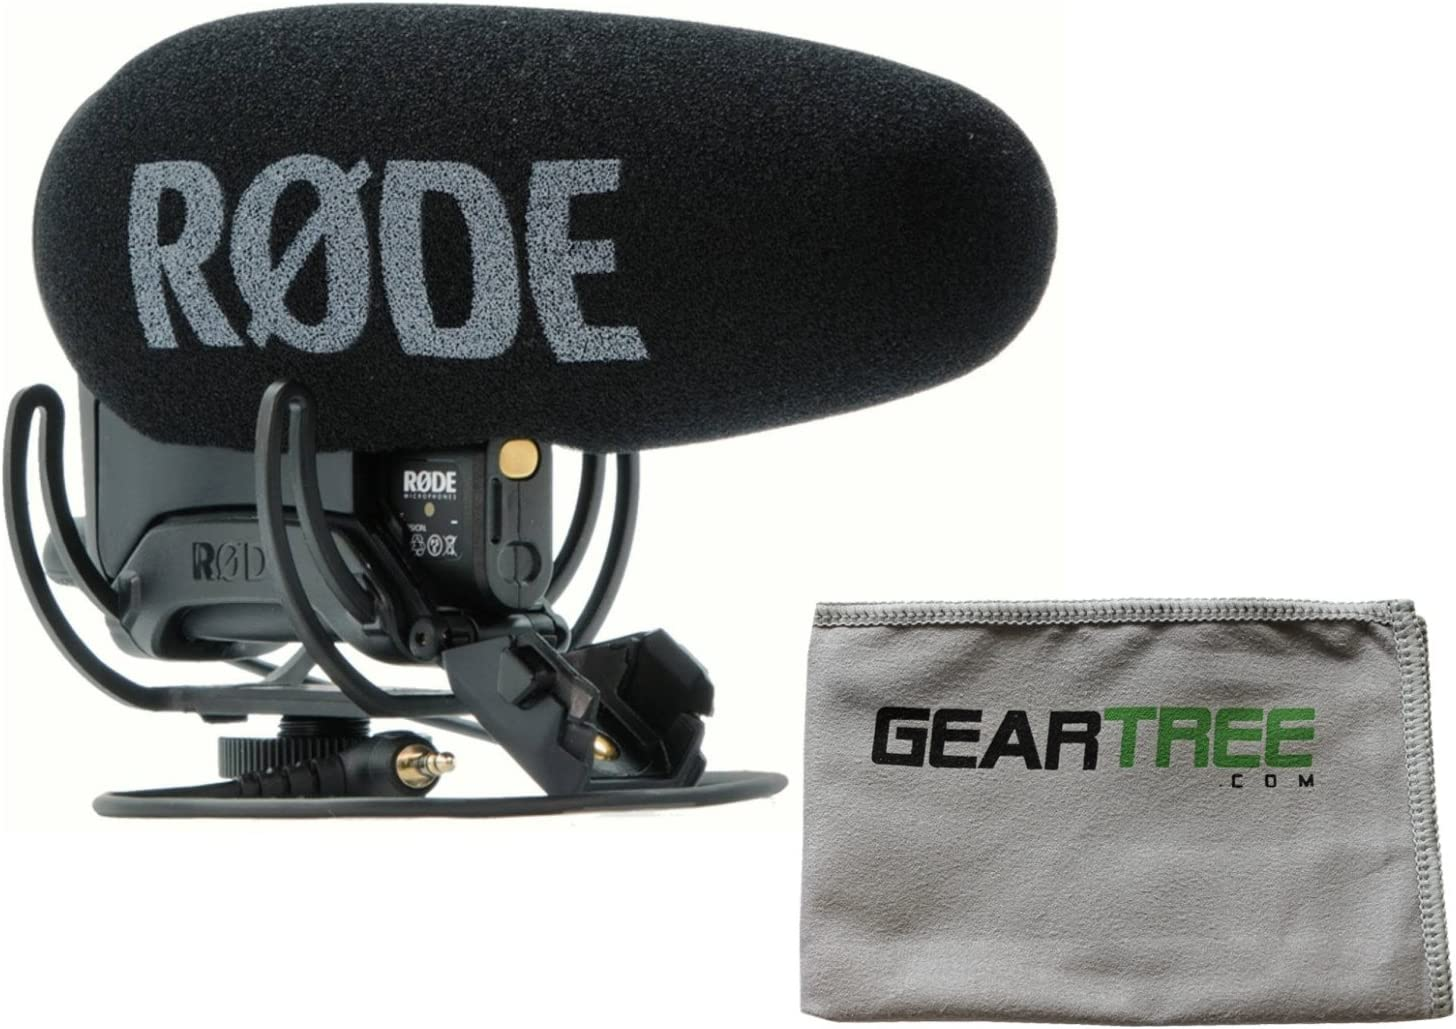 Rode VideoMic Pro R Plus VideoMic Pro with Rycote Lyre Shockmount w//Geartree Cl